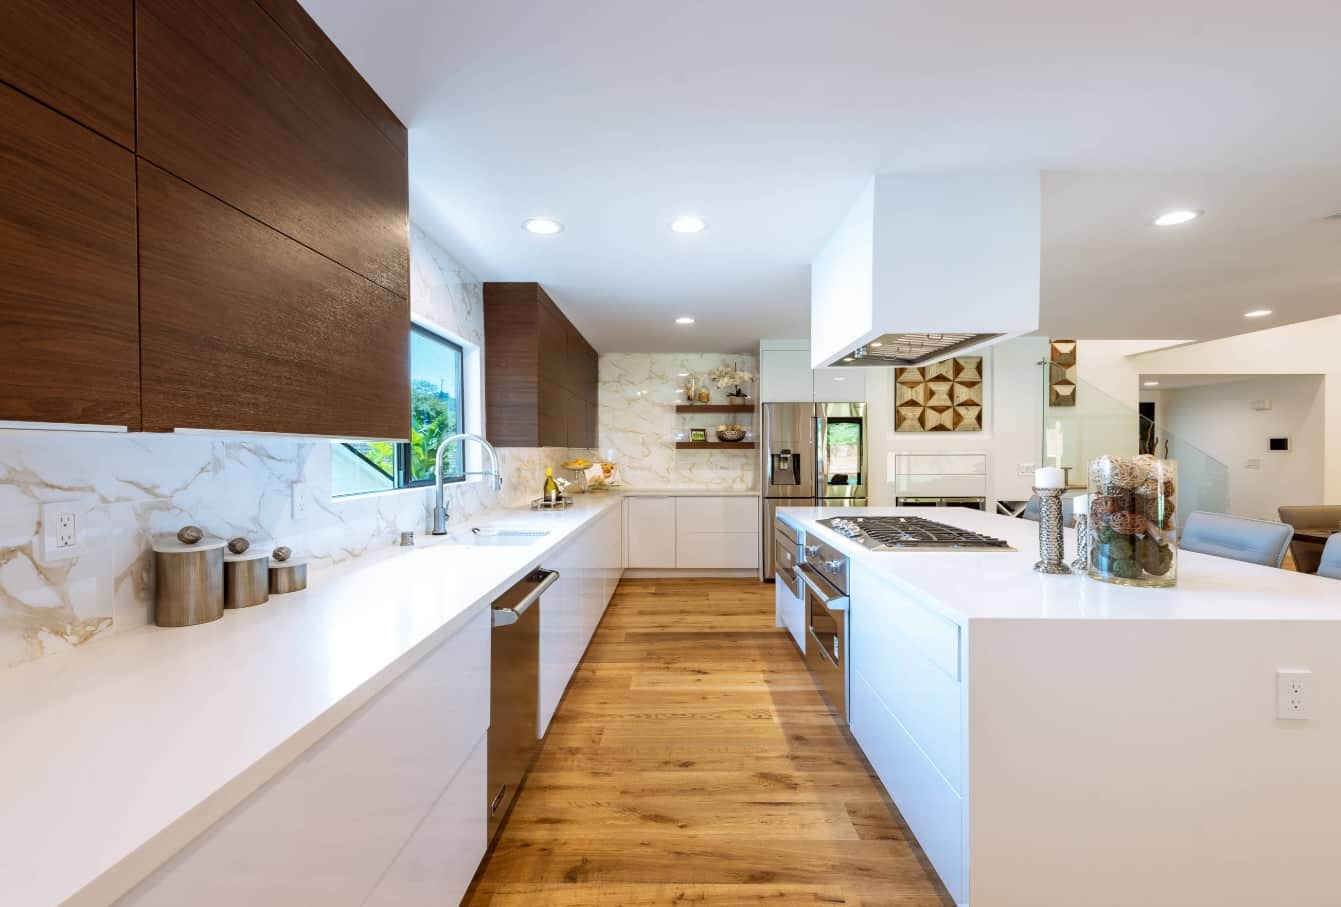 3 Reasons To Consider Building Custom. Contemporary kitchen of natural materials in white and dark brown color scheme